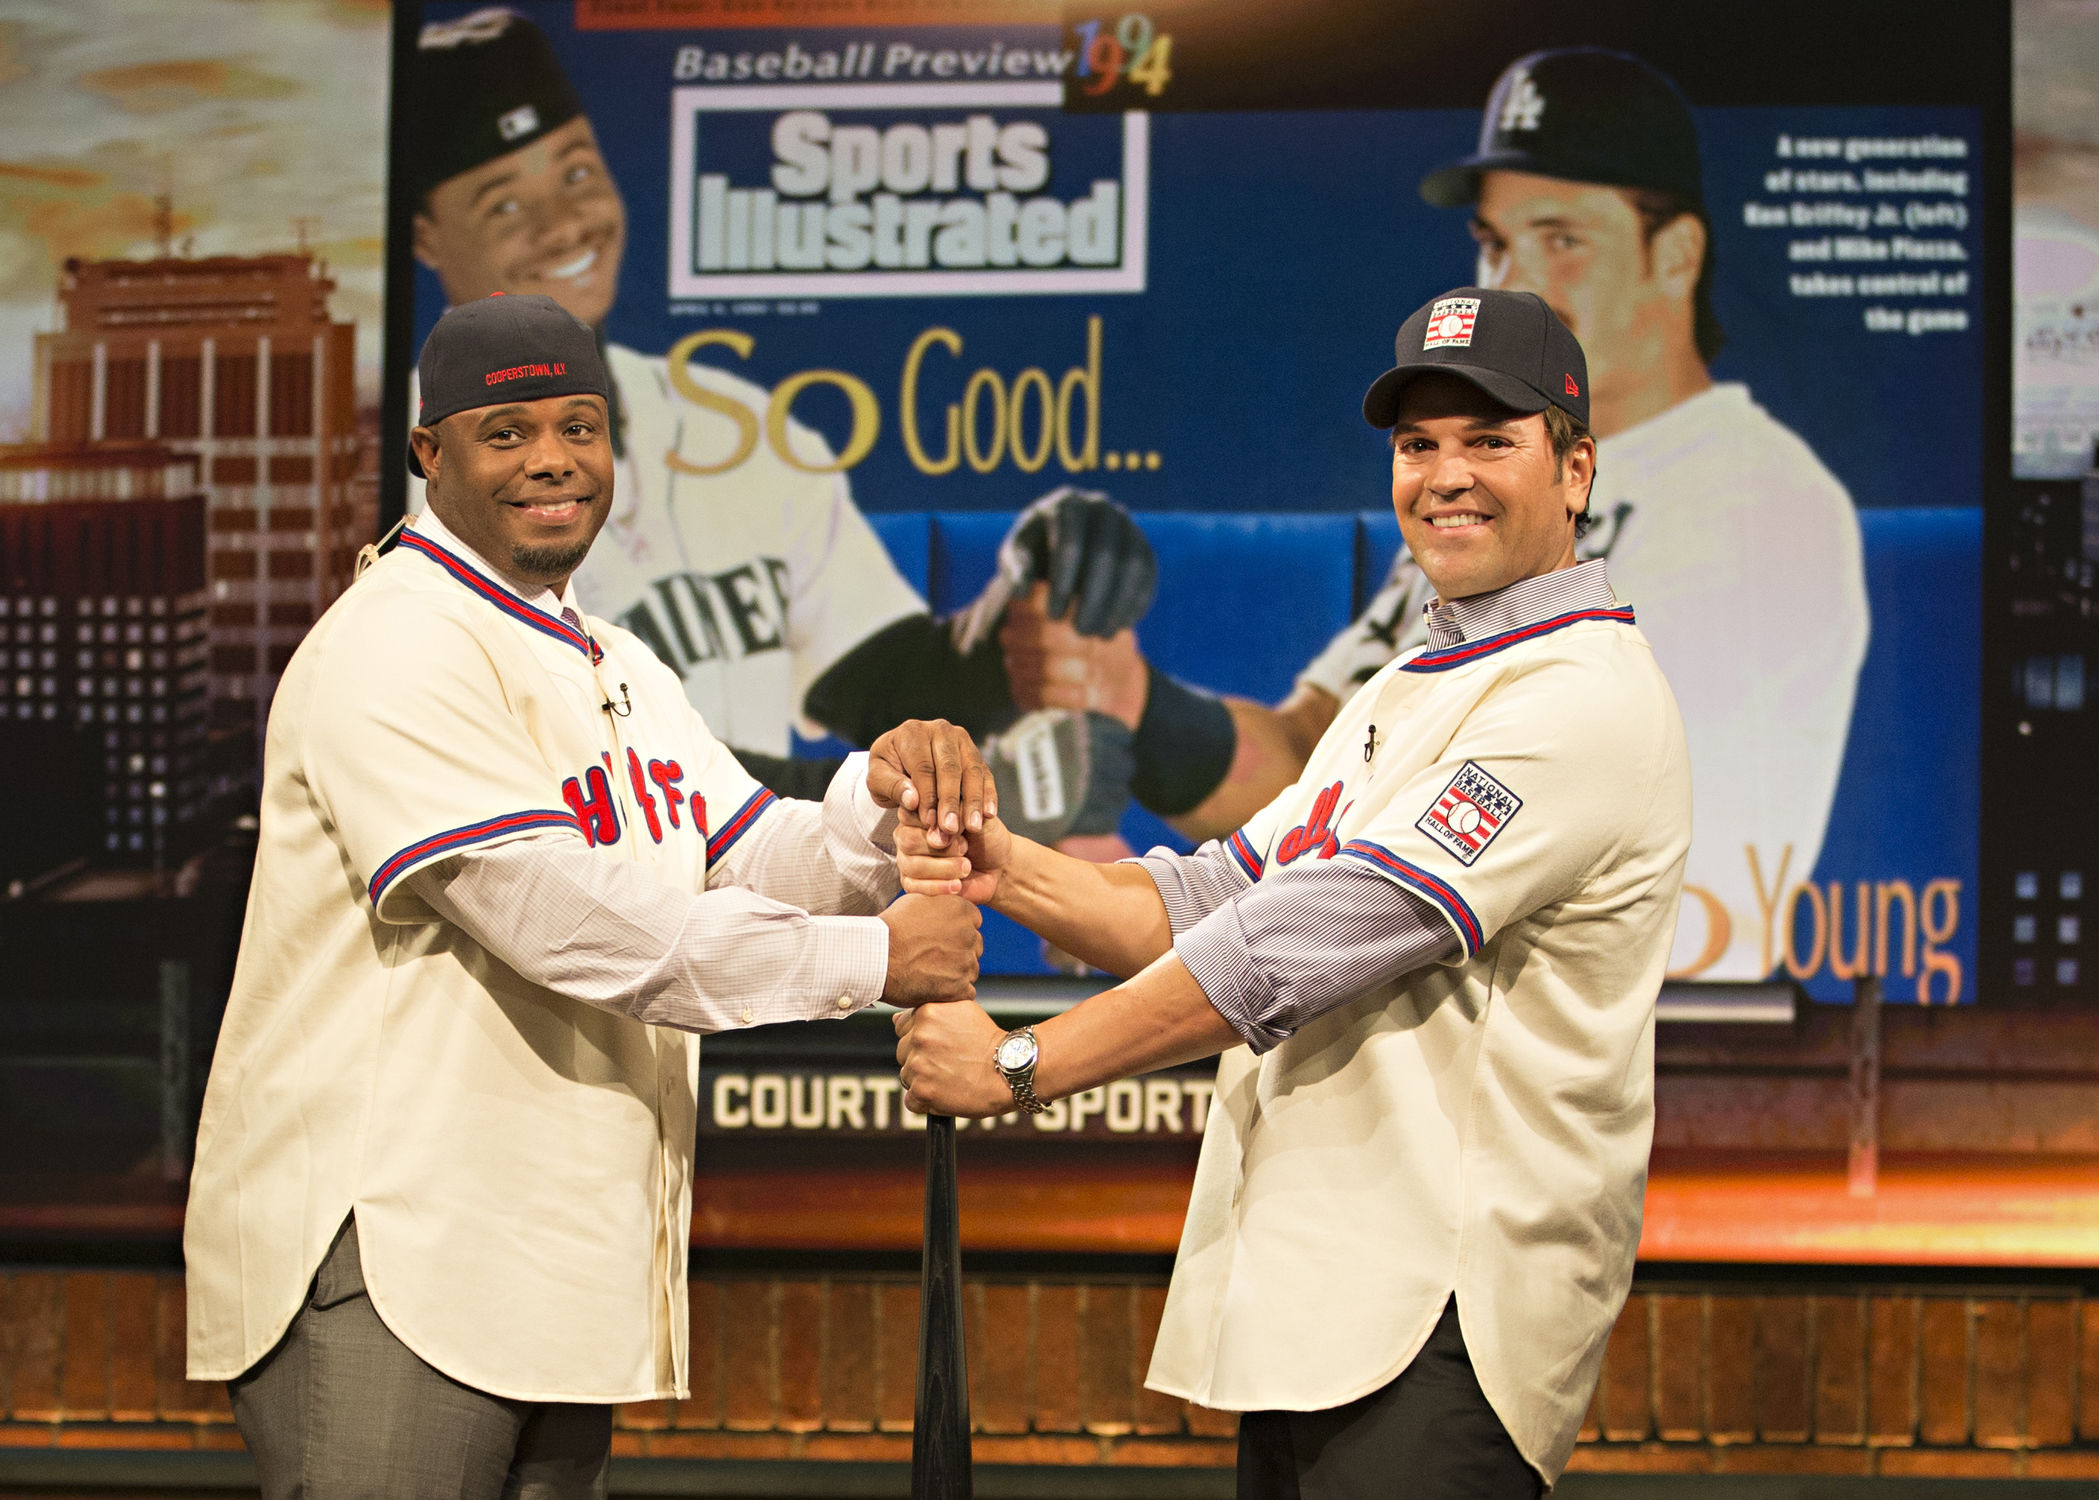 795e92039b Class of 2016 electees Ken Griffey Jr. (left) and Mike Piazza re-